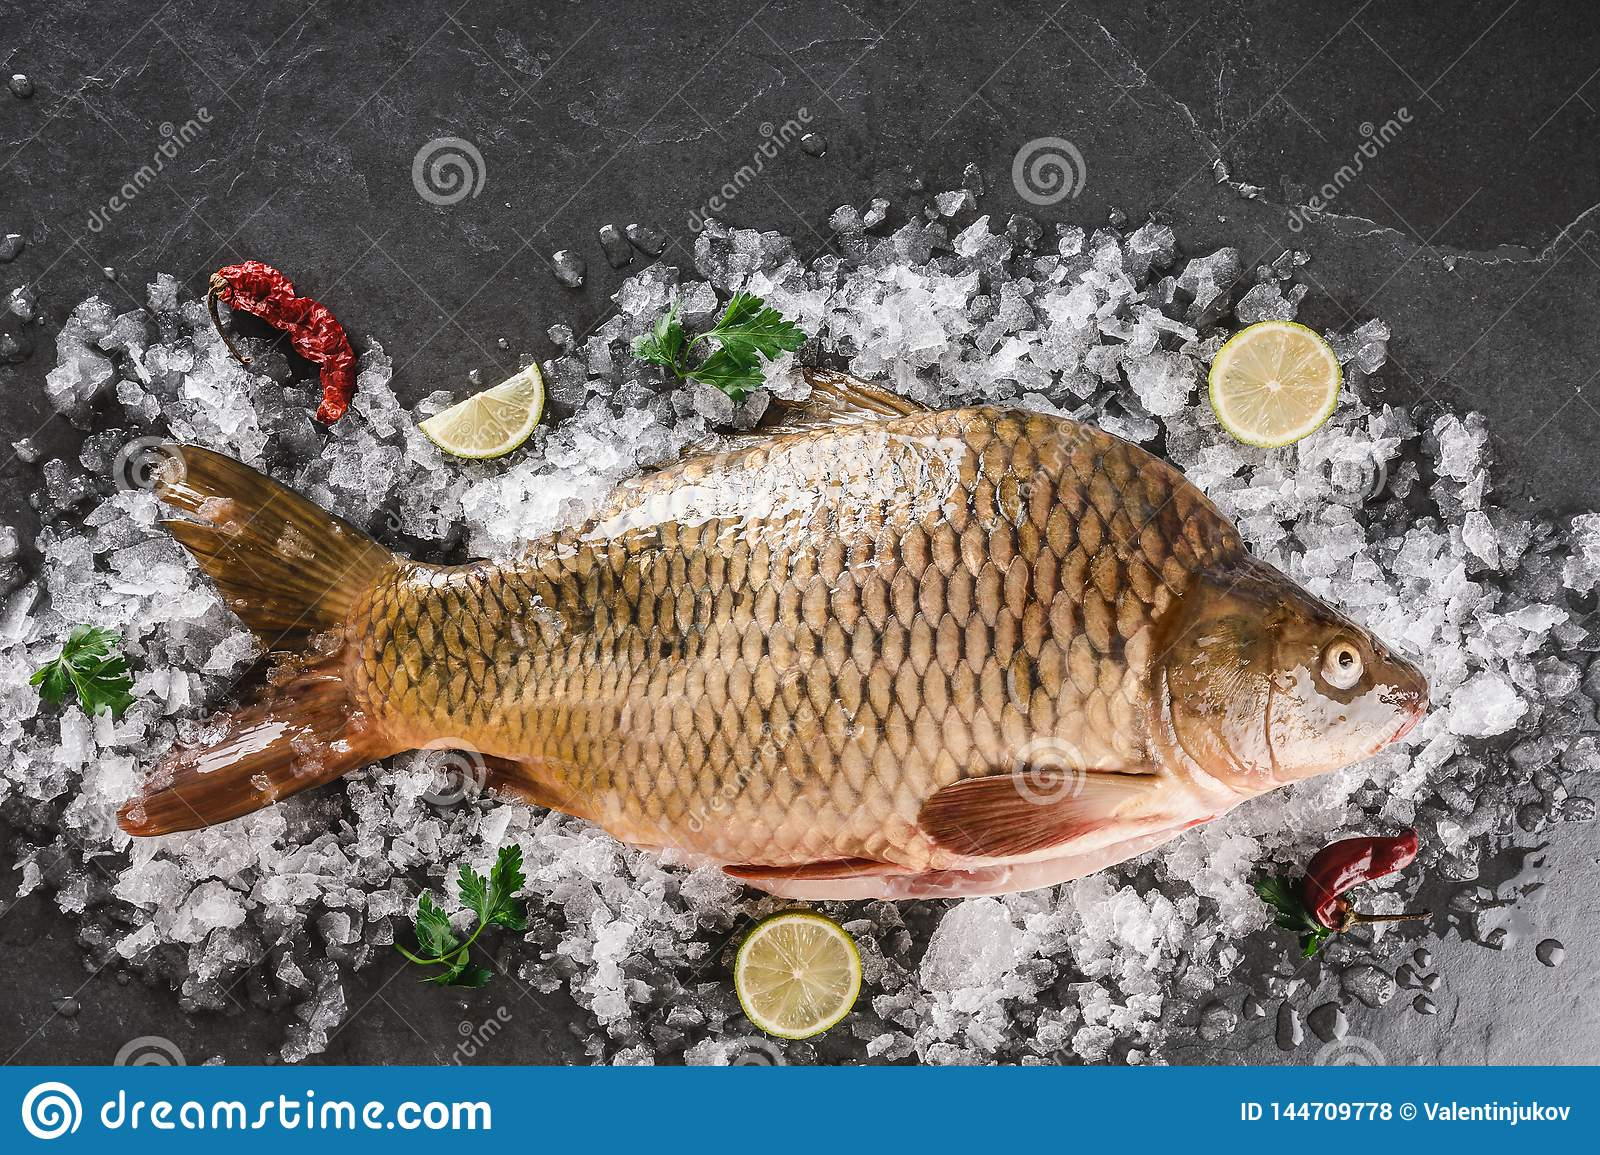 Fresh raw mirror carp fish with spices, lemon on ice over dark stone background. Creative layout made of fish, Seafood, top view